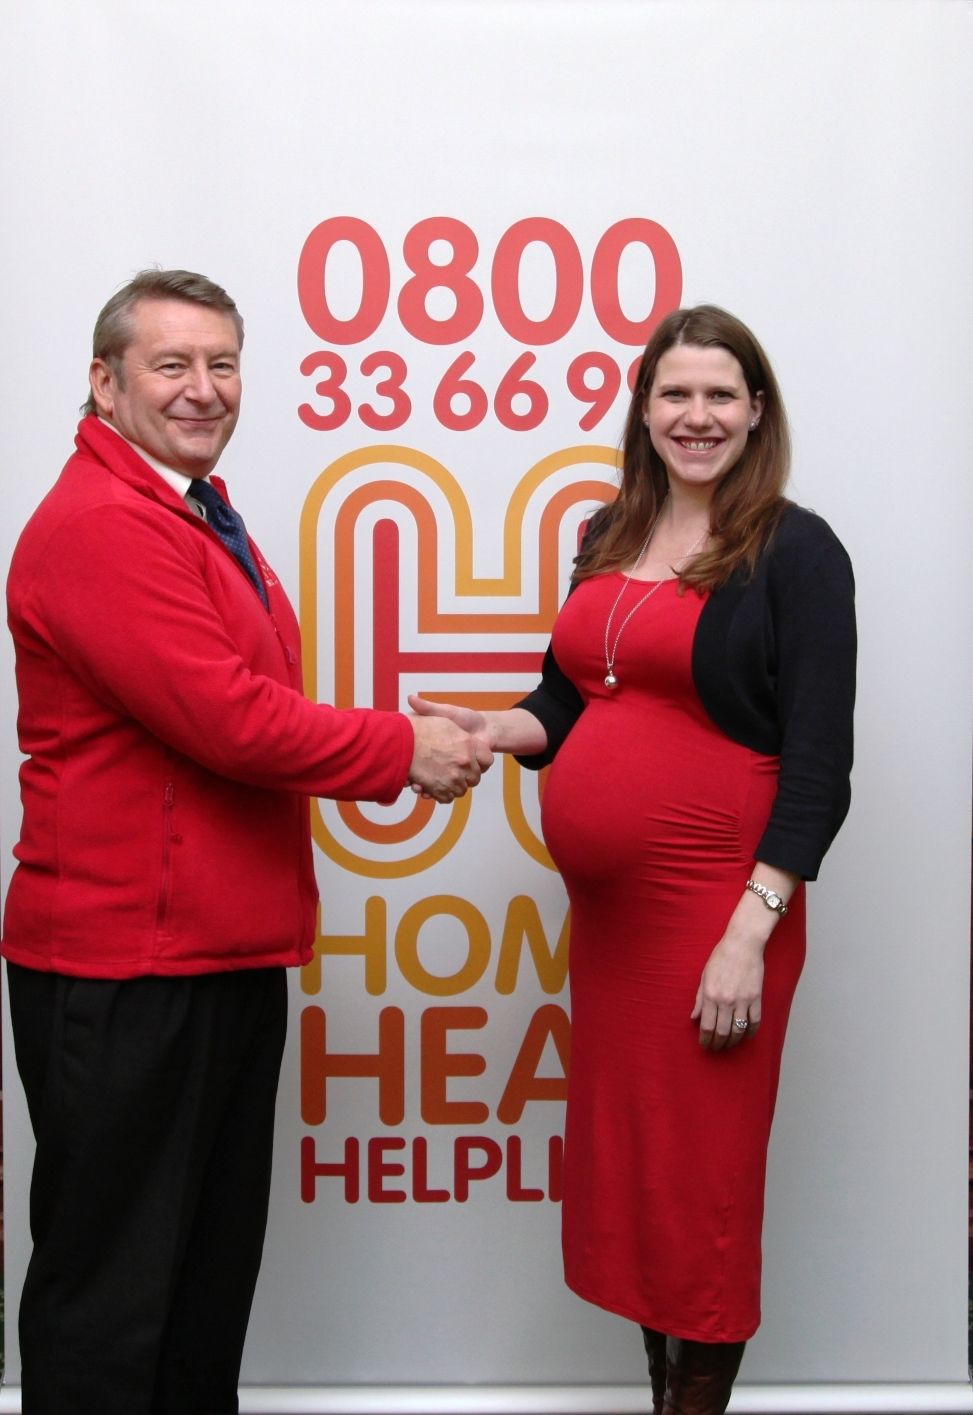 131204_JoSwinsonMP_-_Home_Heat_Helpline_2013_photo.jpg